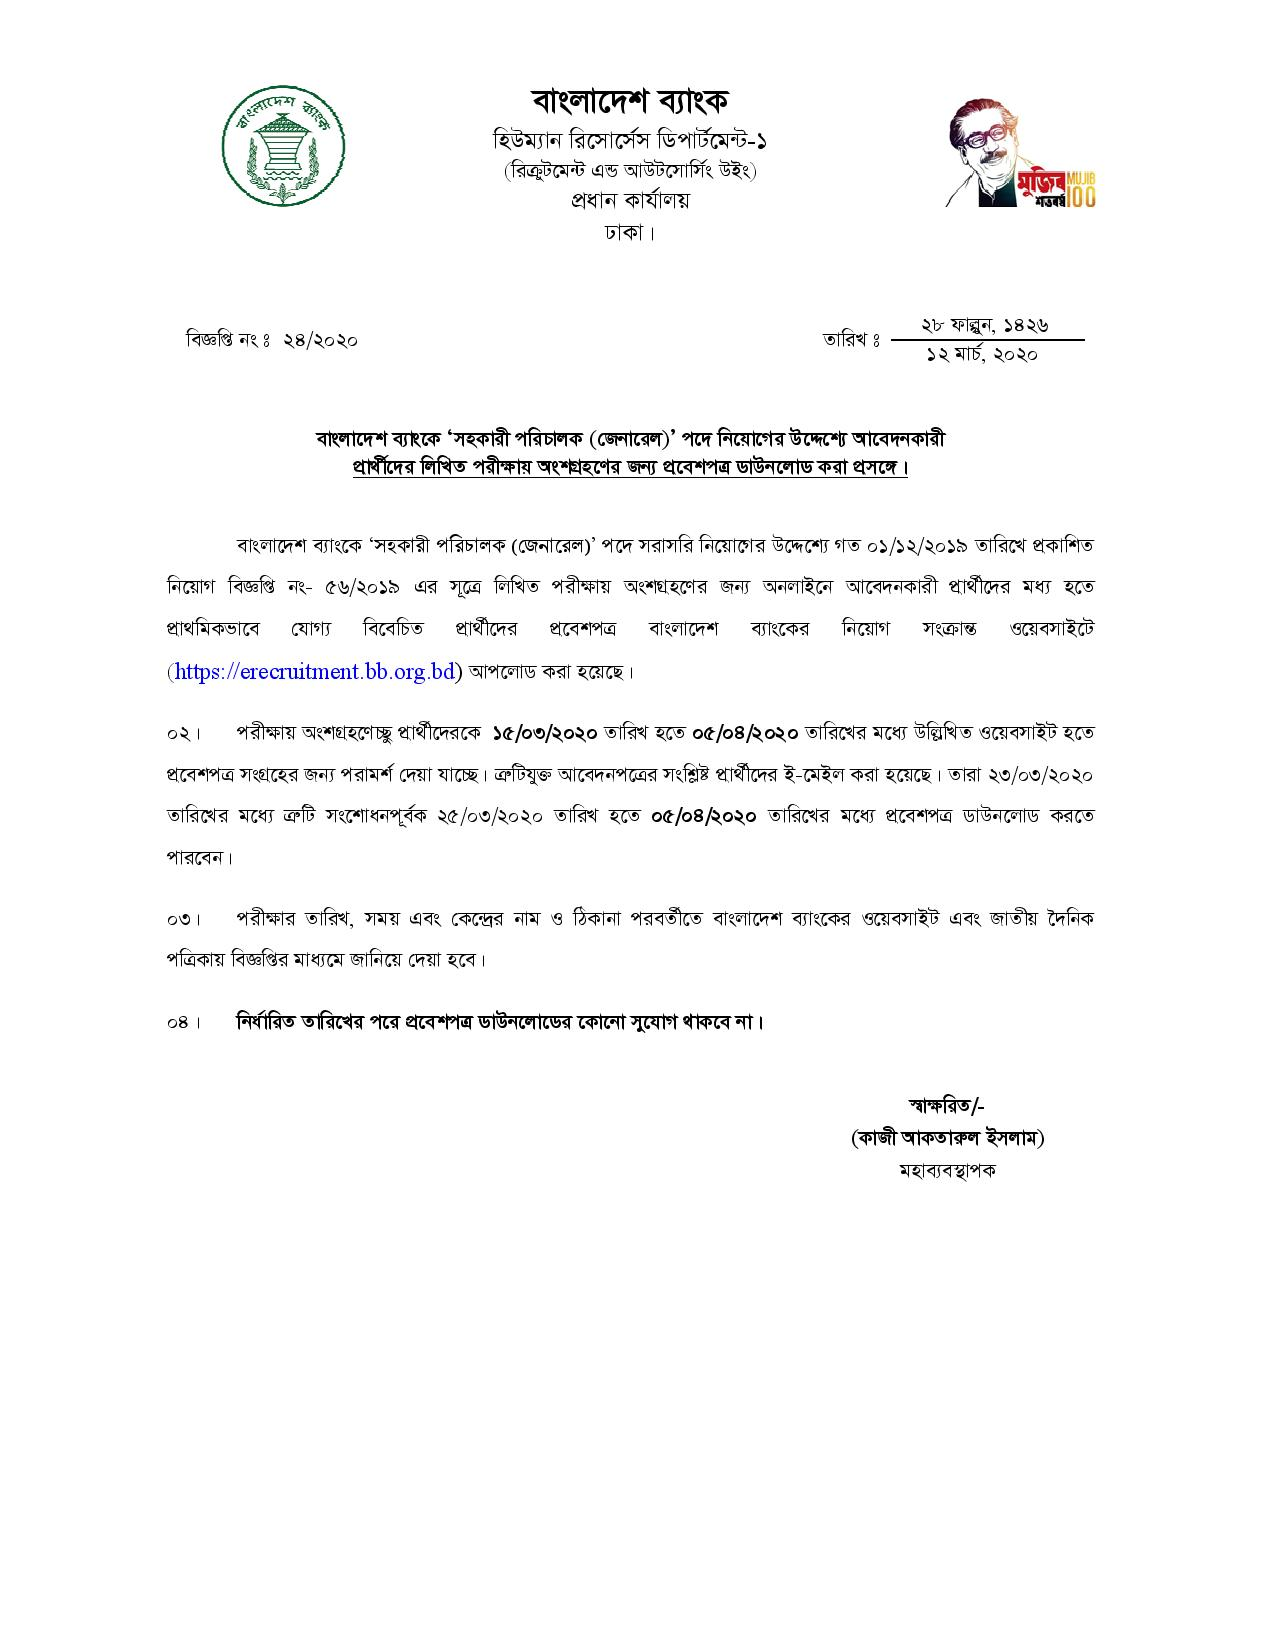 Bangladesh Bank MCQ Exam Admit card 2020 | Assistant Director General